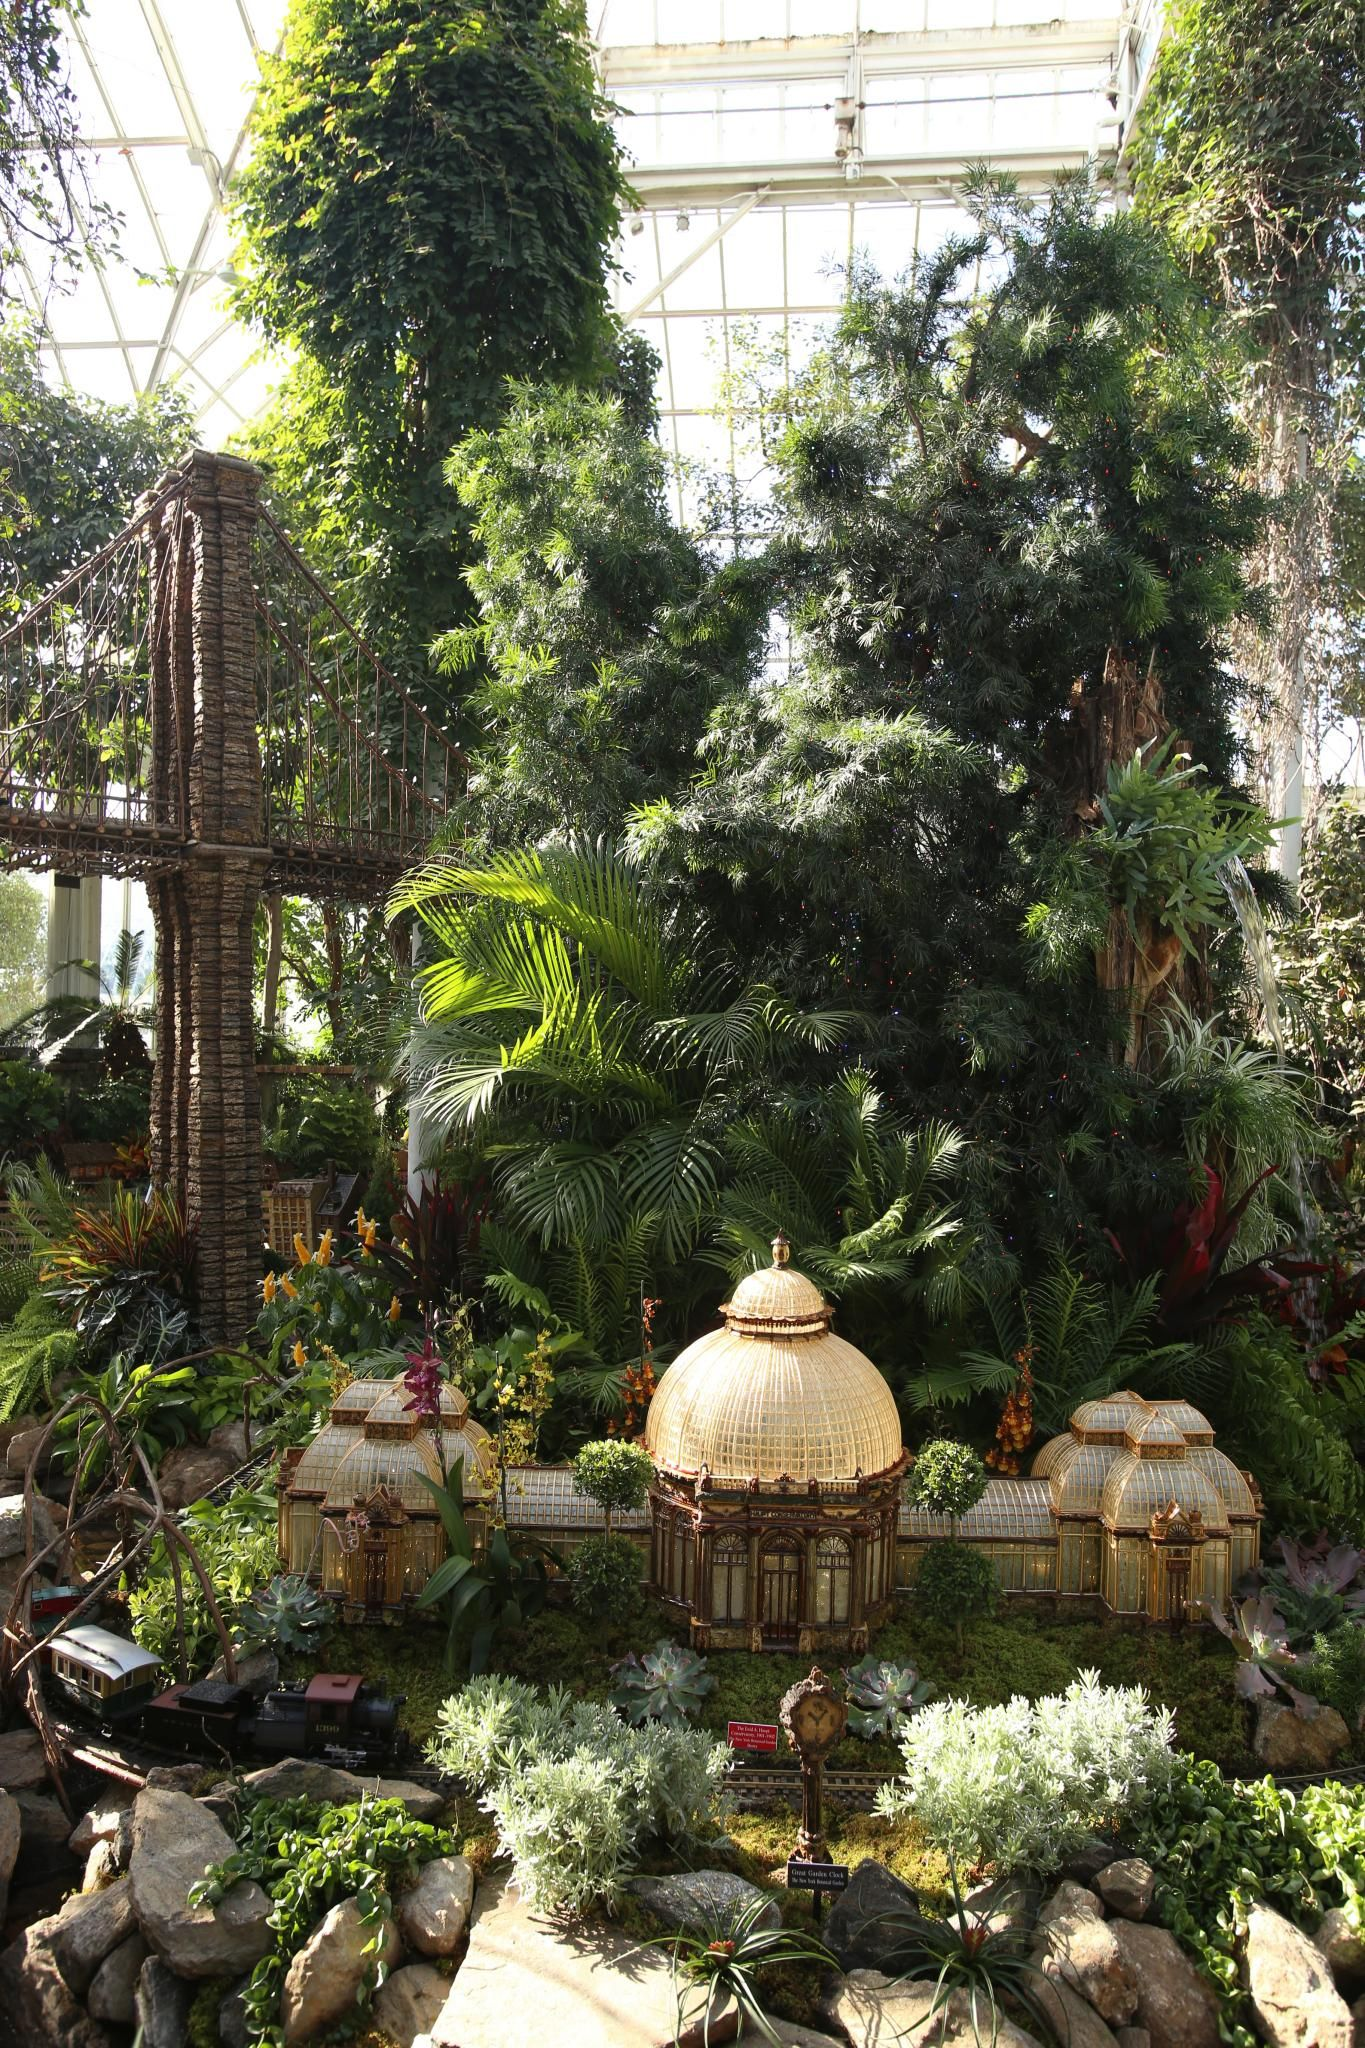 The Holiday Train Show At The New York Botanical Garden Day 2